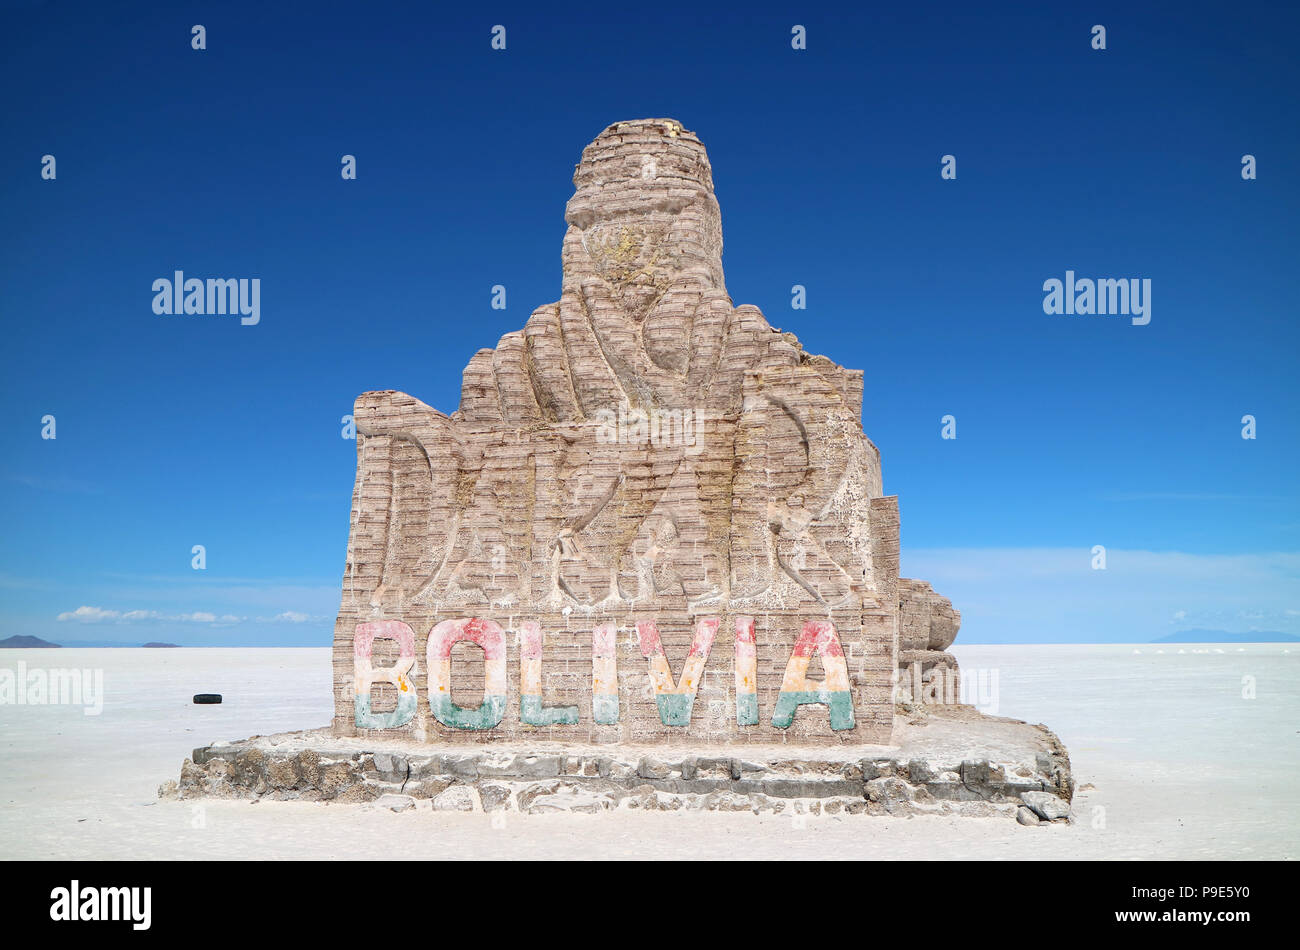 Dakar Rally monument made from salt on the Uyuni salt flats, Potosi, Bolivia, South America - Stock Image